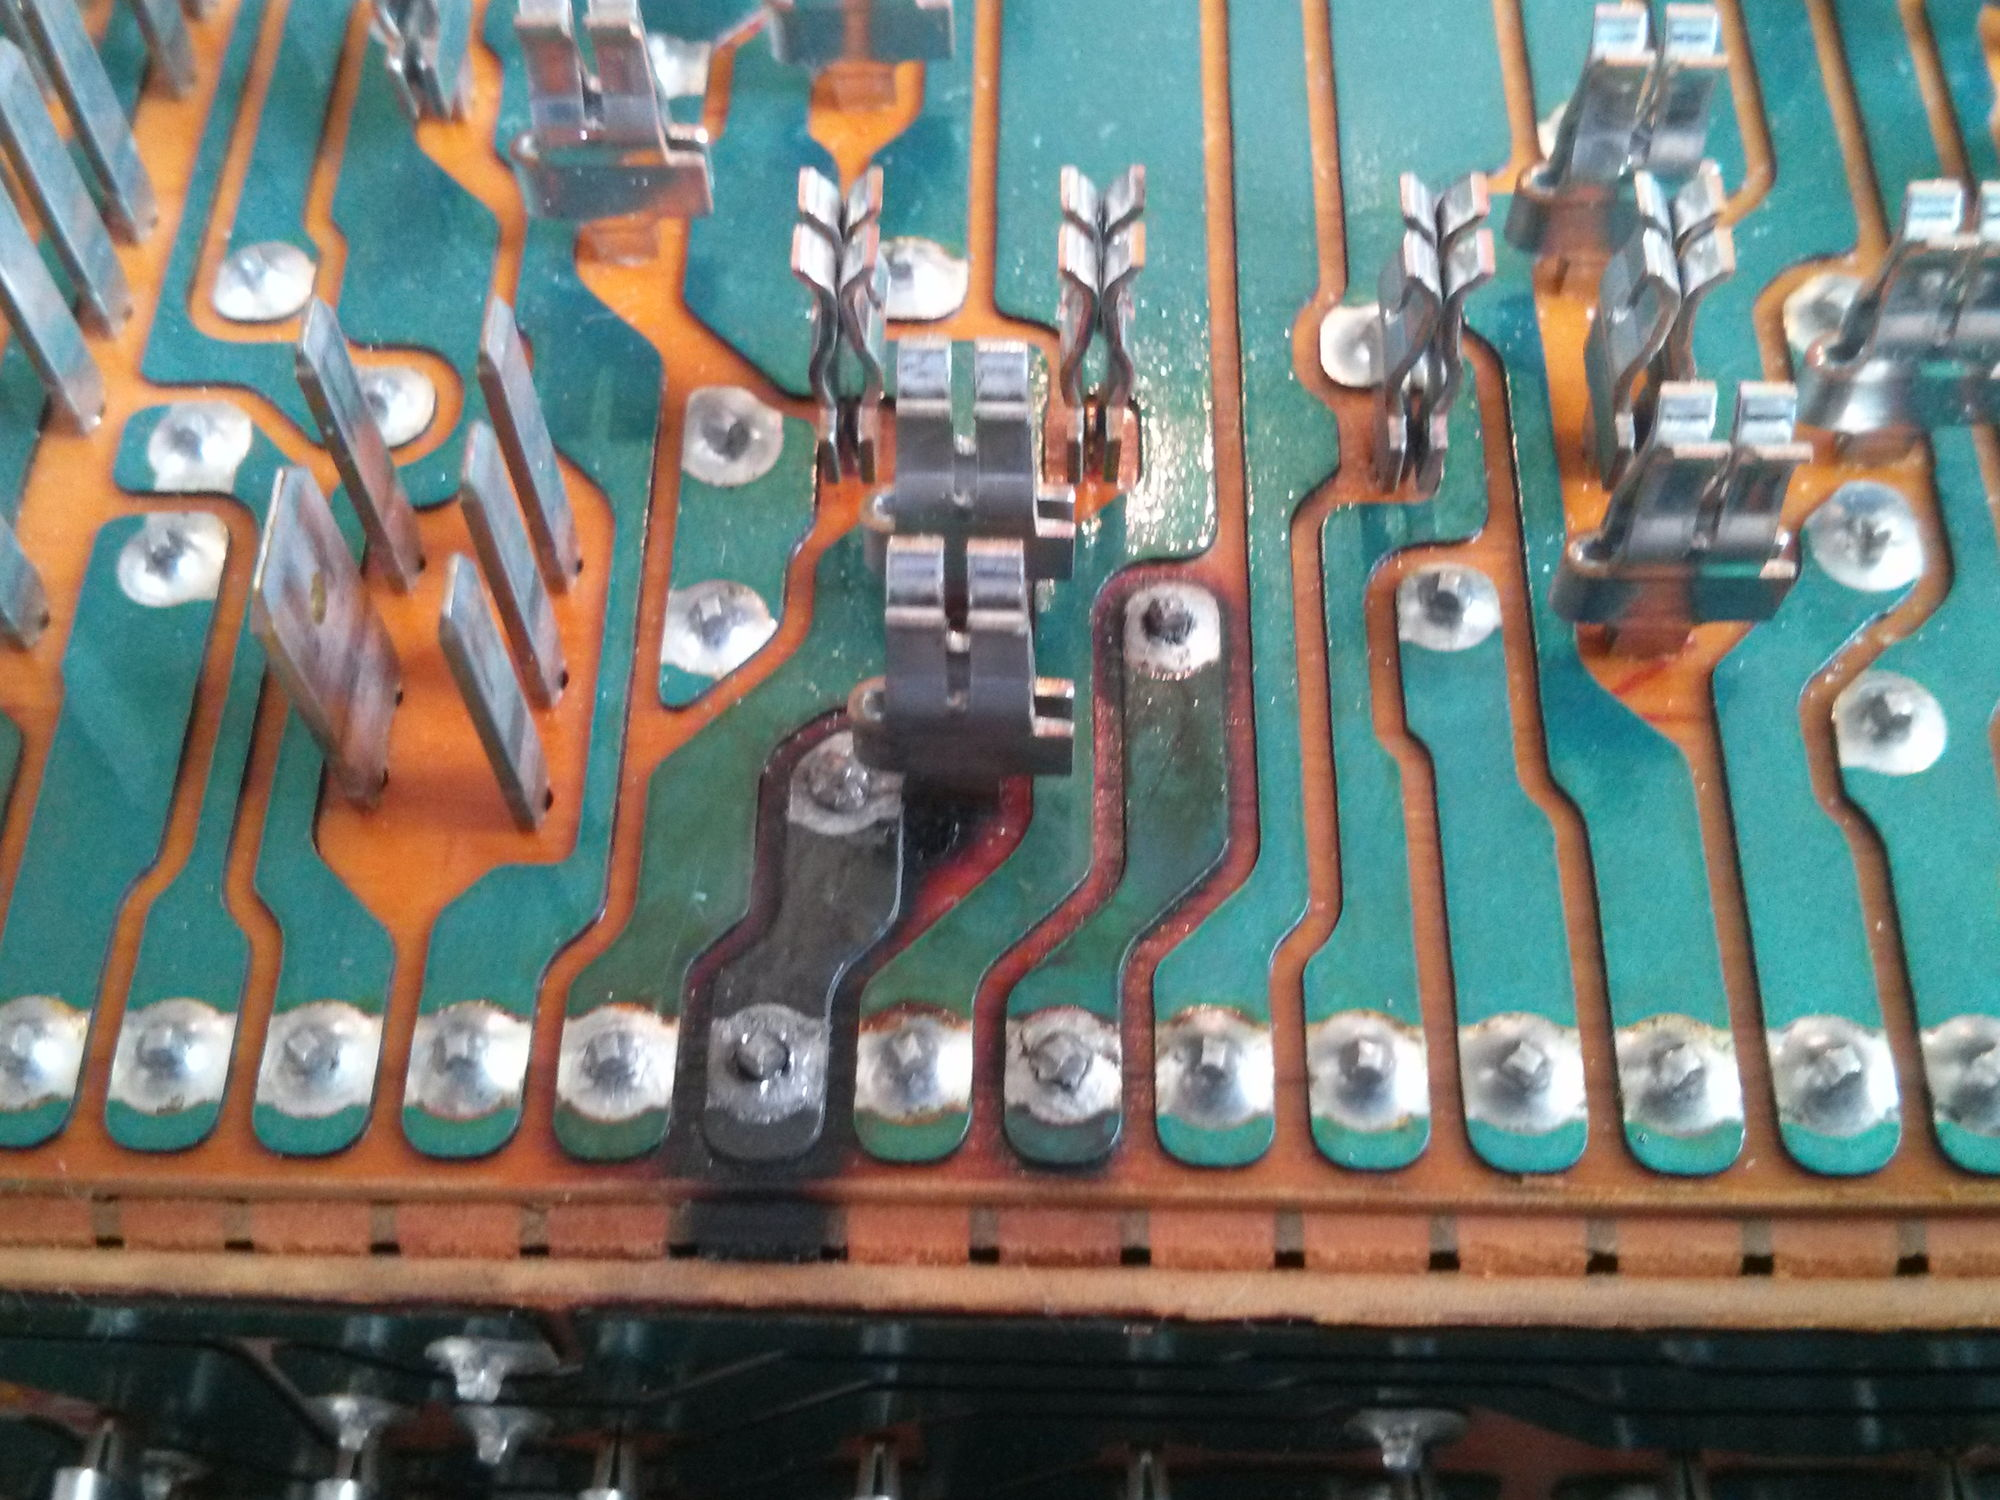 ford escort fuse box problems wiring library Limted Ford 500 Fuse Box mk5 escort fuse box repair some advice please passionford ford cheers brent